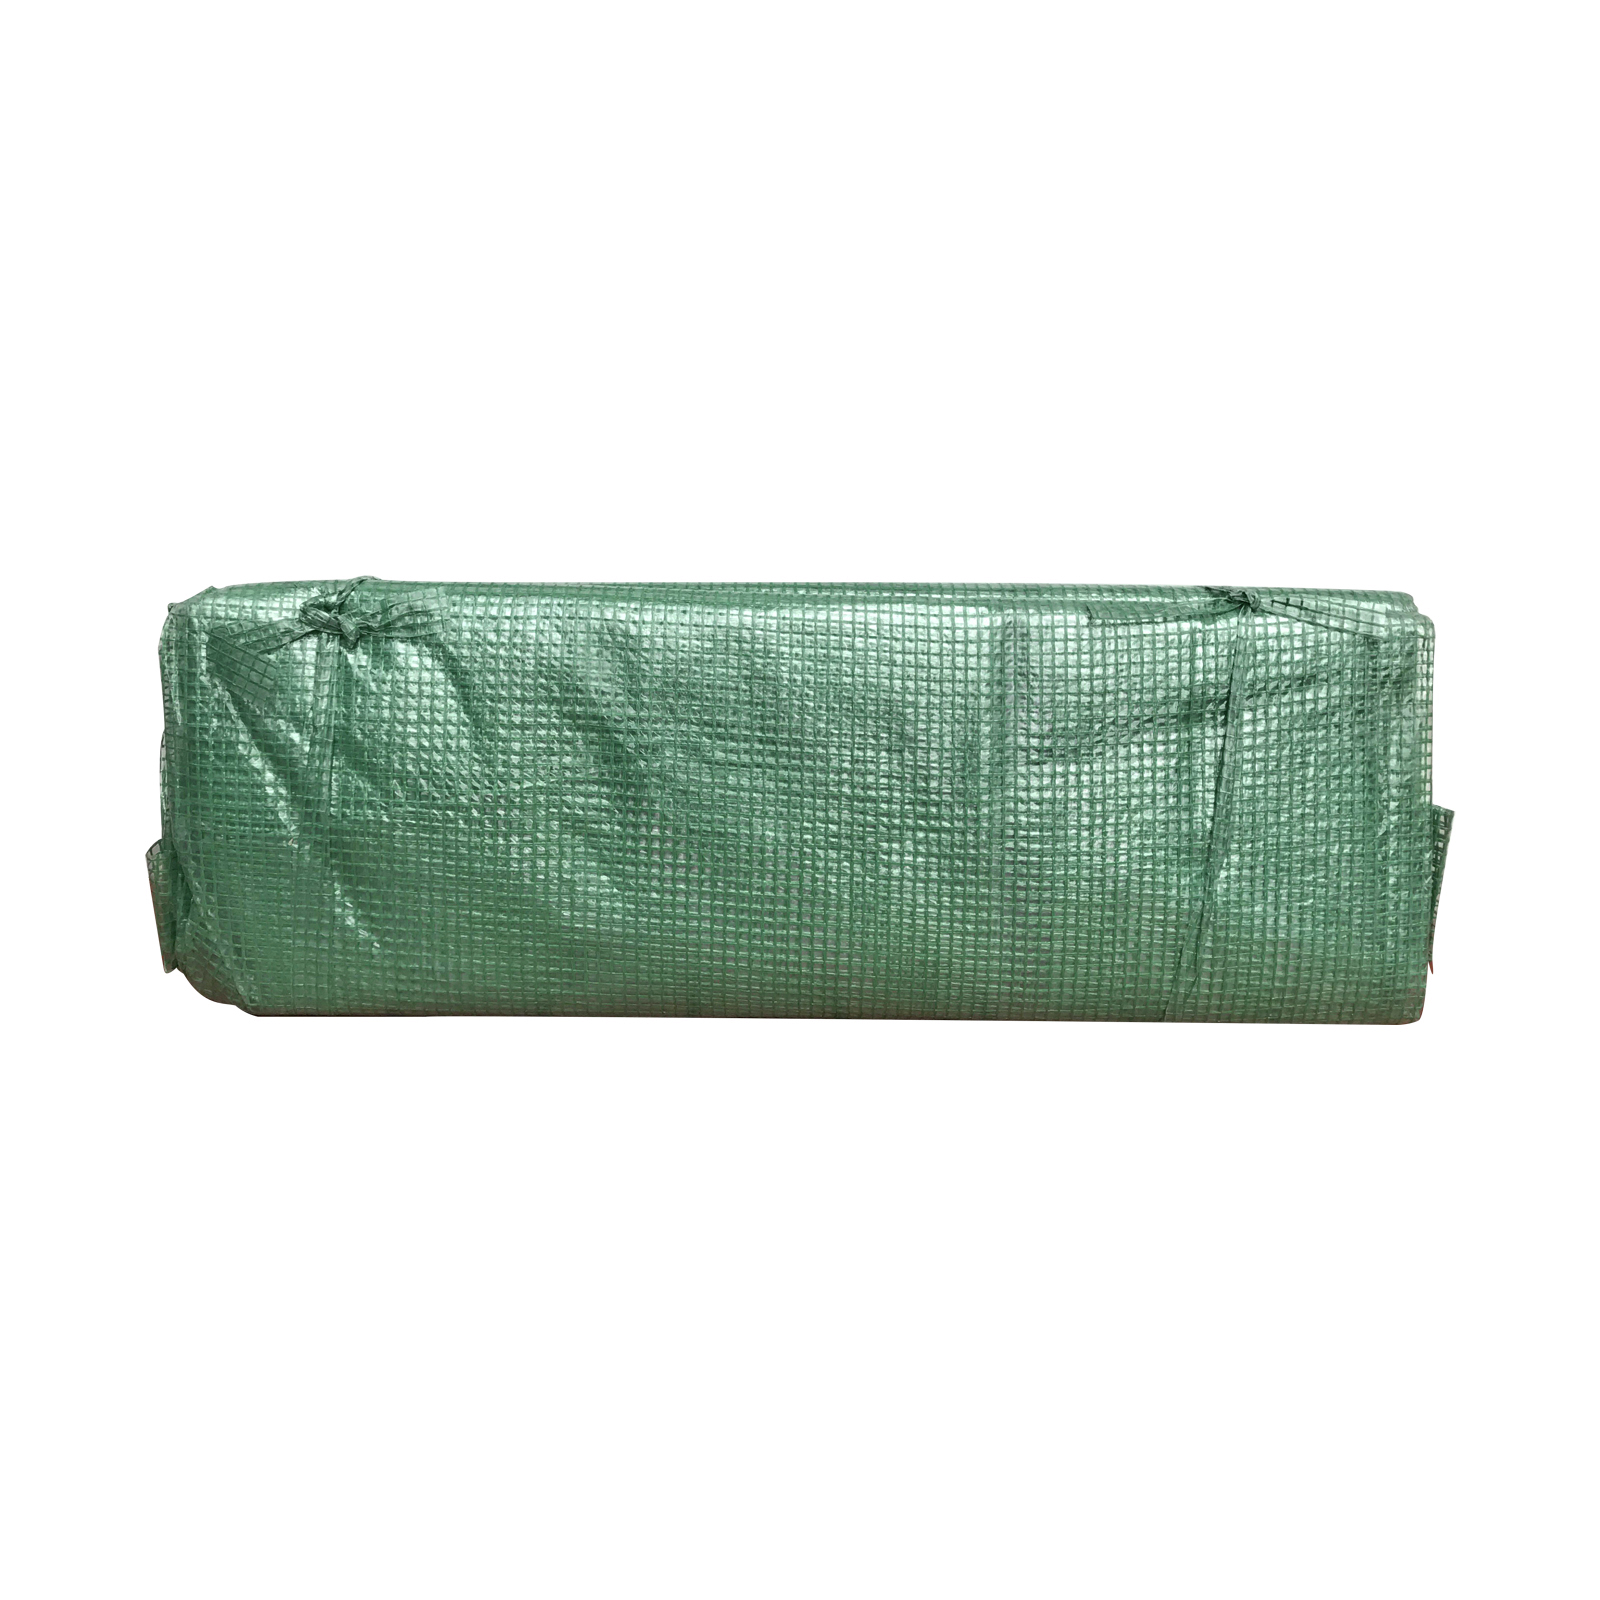 Naturallife 200 x 200 x 220cm 120gsm Large Walk In Greenhouse Cover